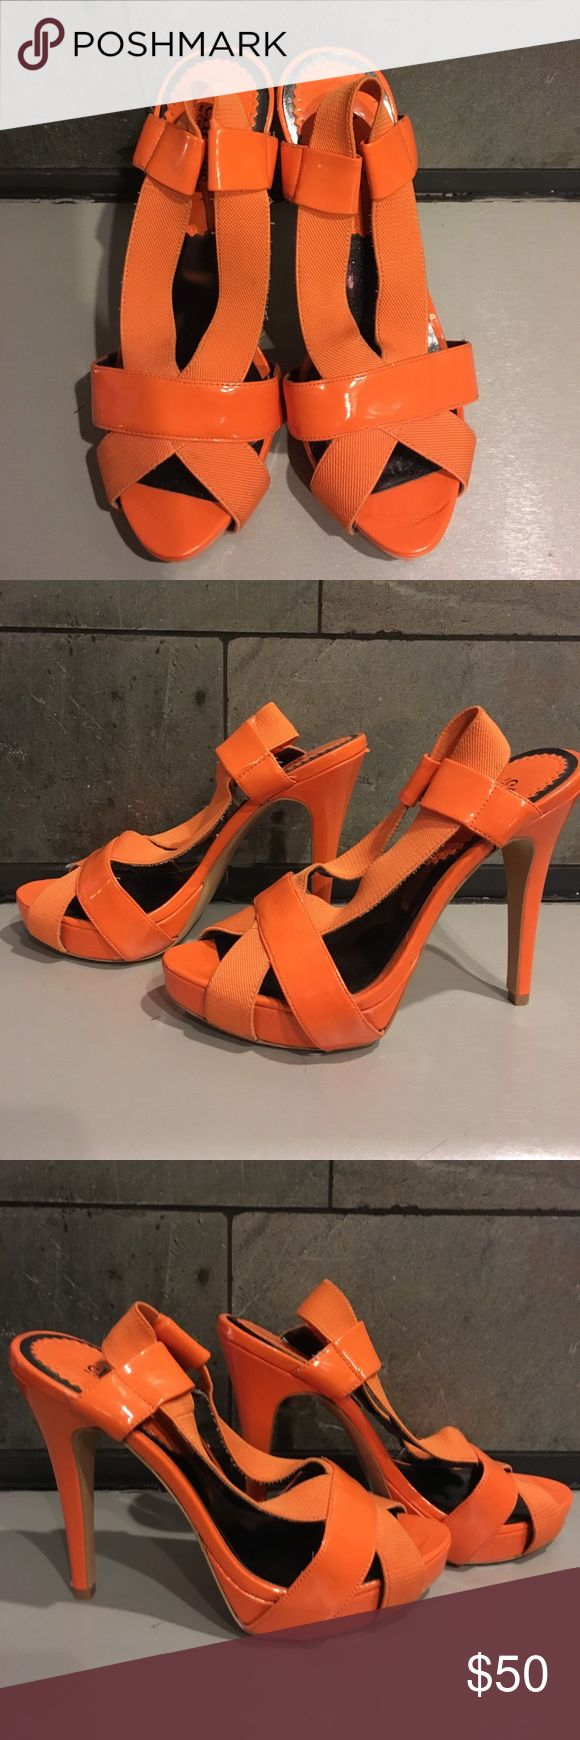 Charles David Orange Platform Sandals Charles David Orange Platform Sandals. Worn a few times, good condition , a few tiny marks here and there. Sorry no trades but reasonable offers considered. I also have these In black in my closet! Thank you Charles David Shoes Sandals